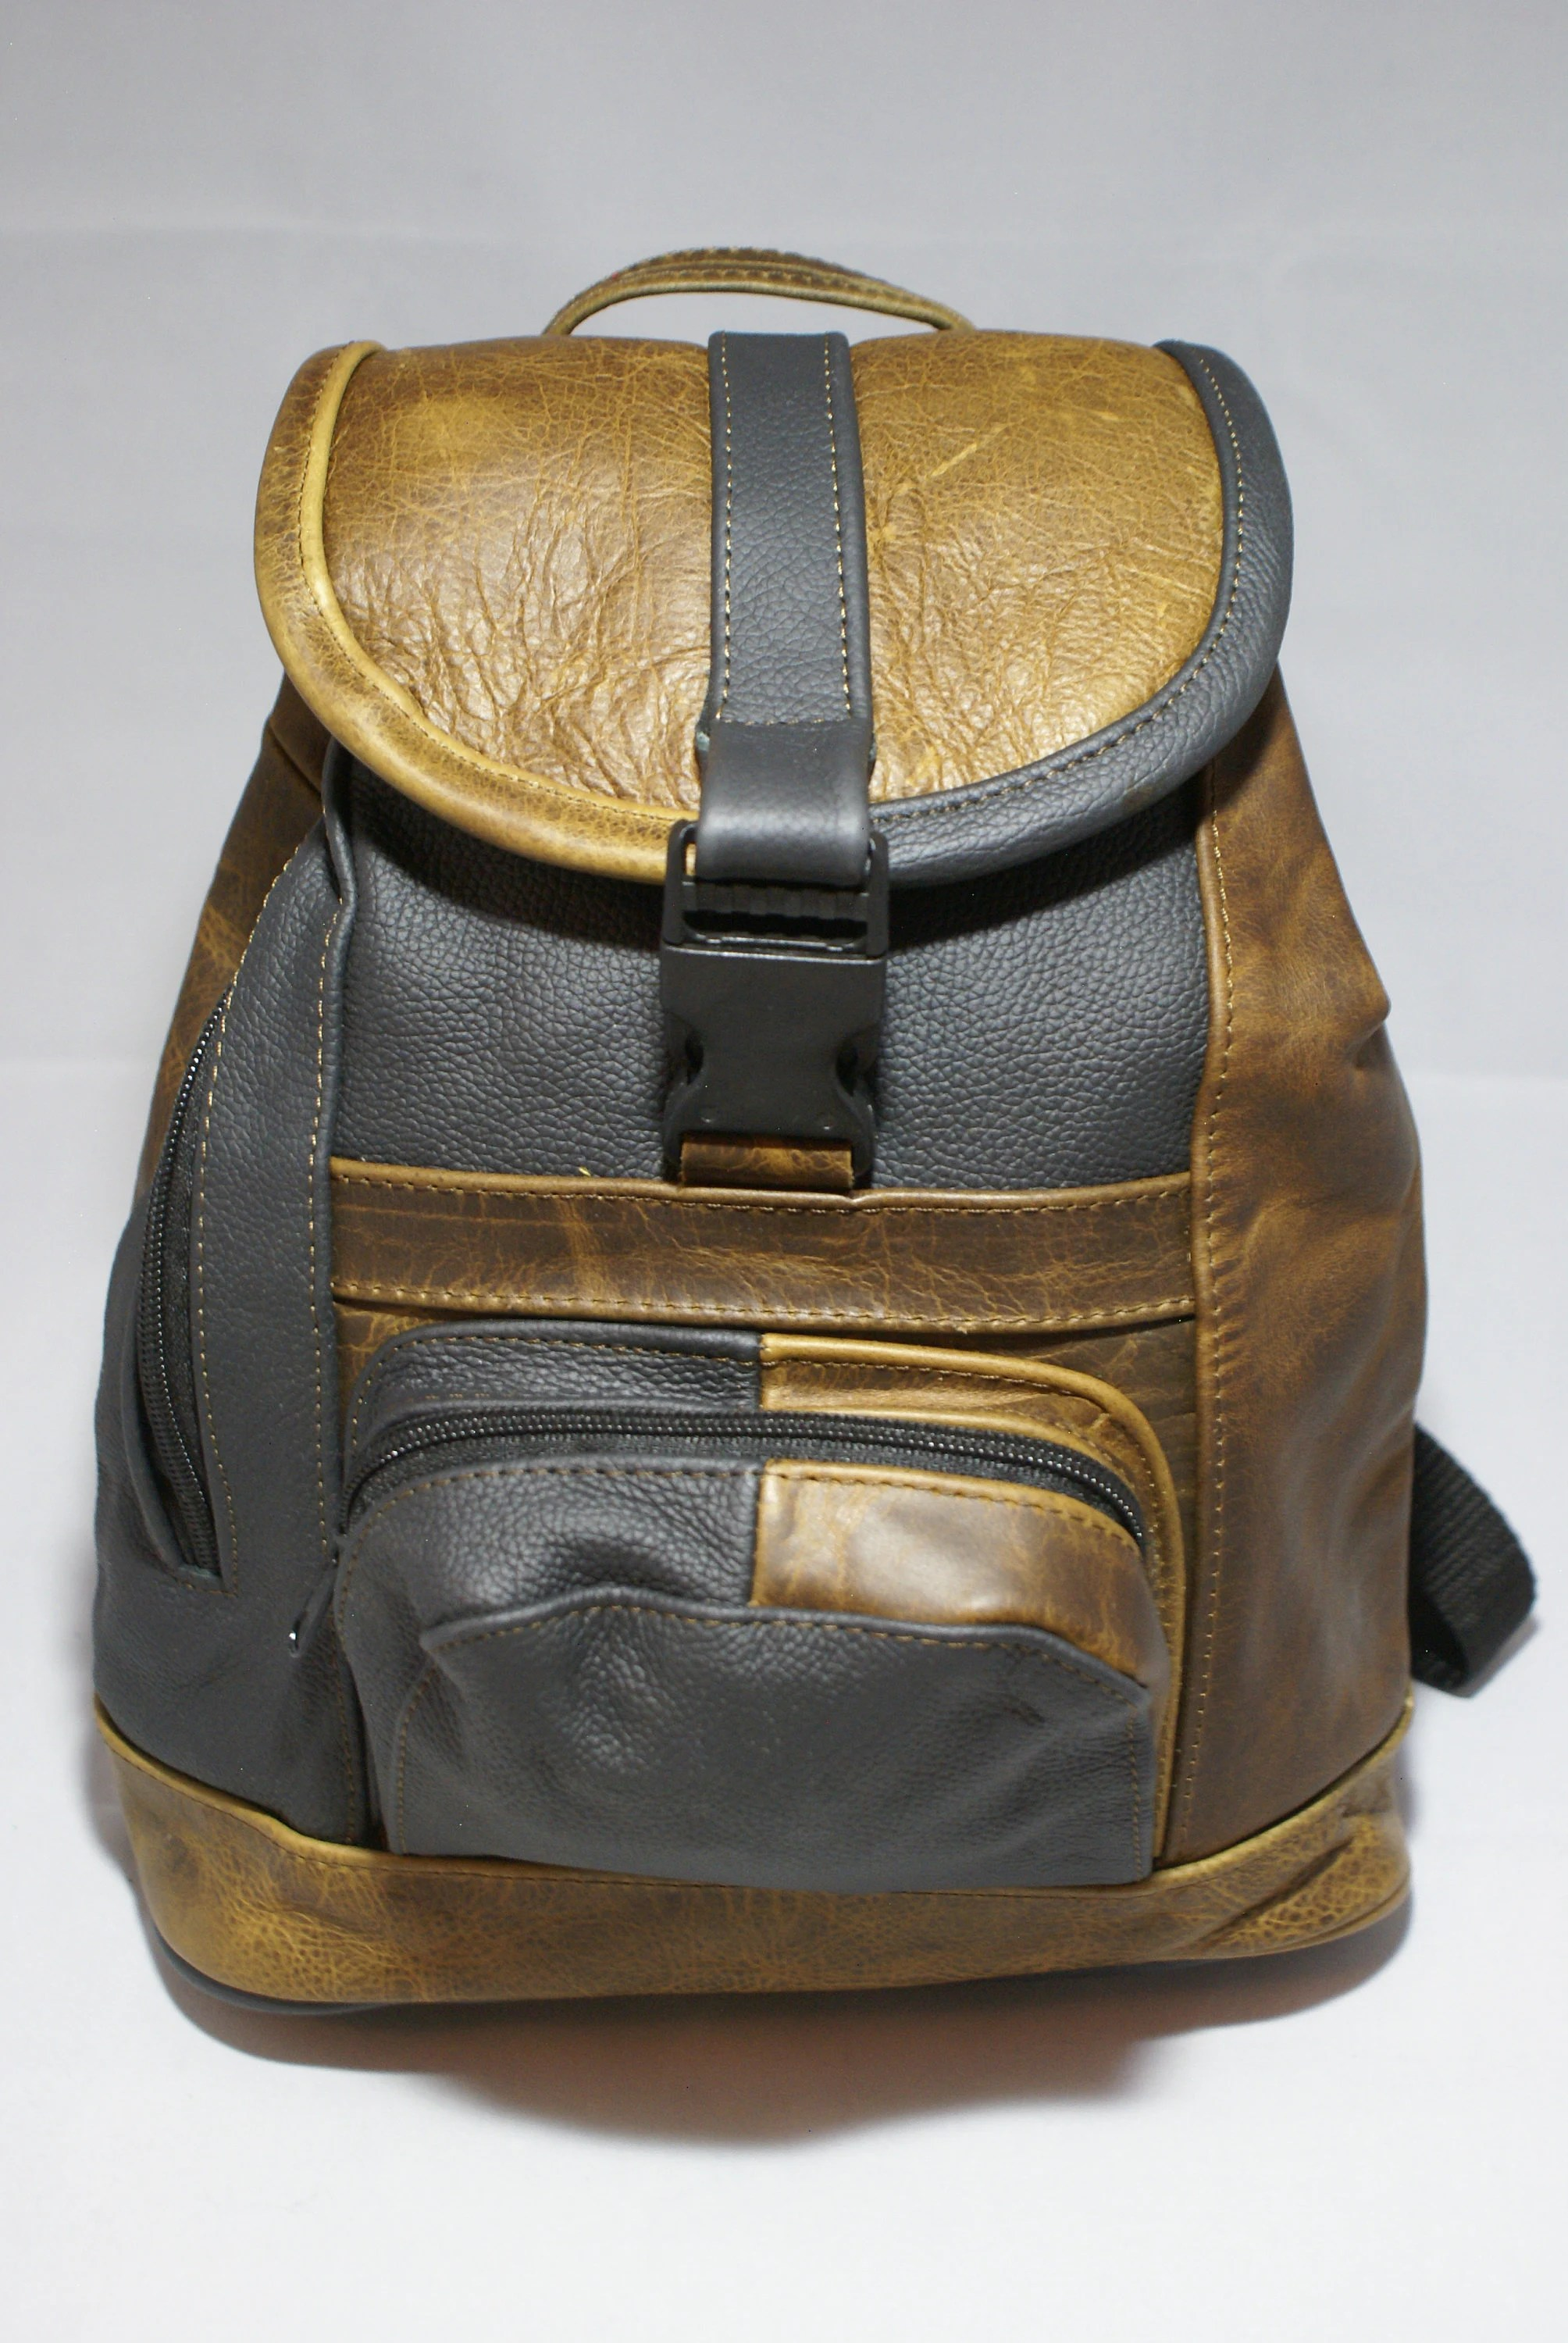 Travel Rucksack Genuine Leather Backpack Two Toned Purse Bag Travel Rucksack Handmade Patch Work With Pockets